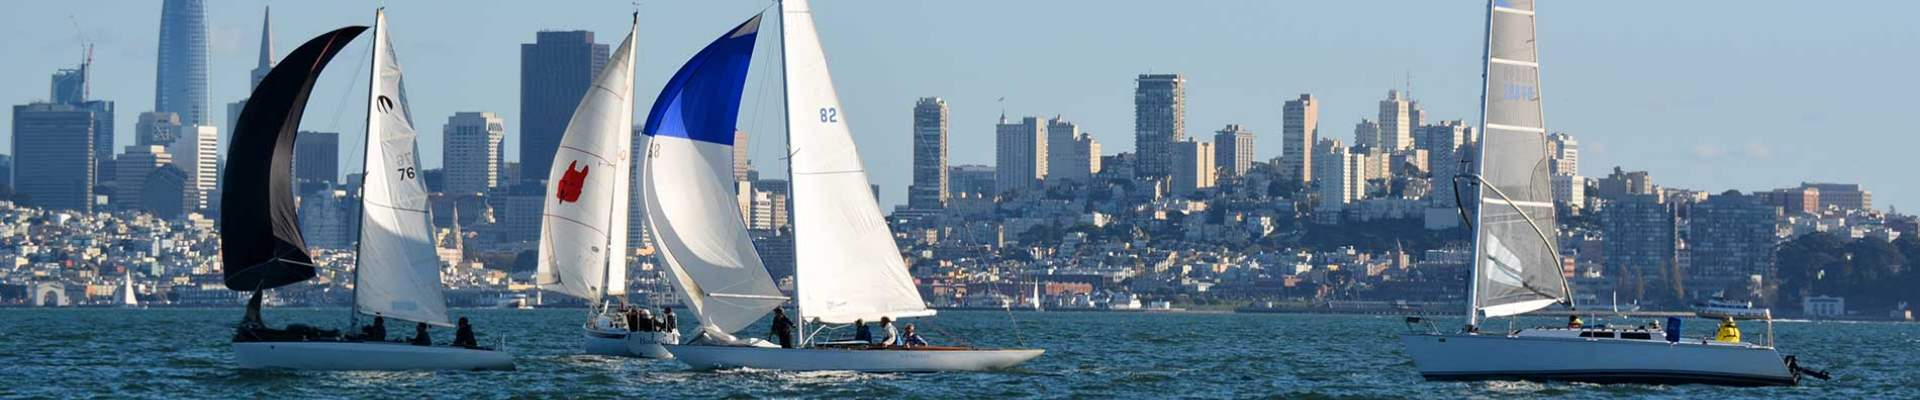 Sausalito Yacht Club - Sausalito, CA - Summer Sailing Camp